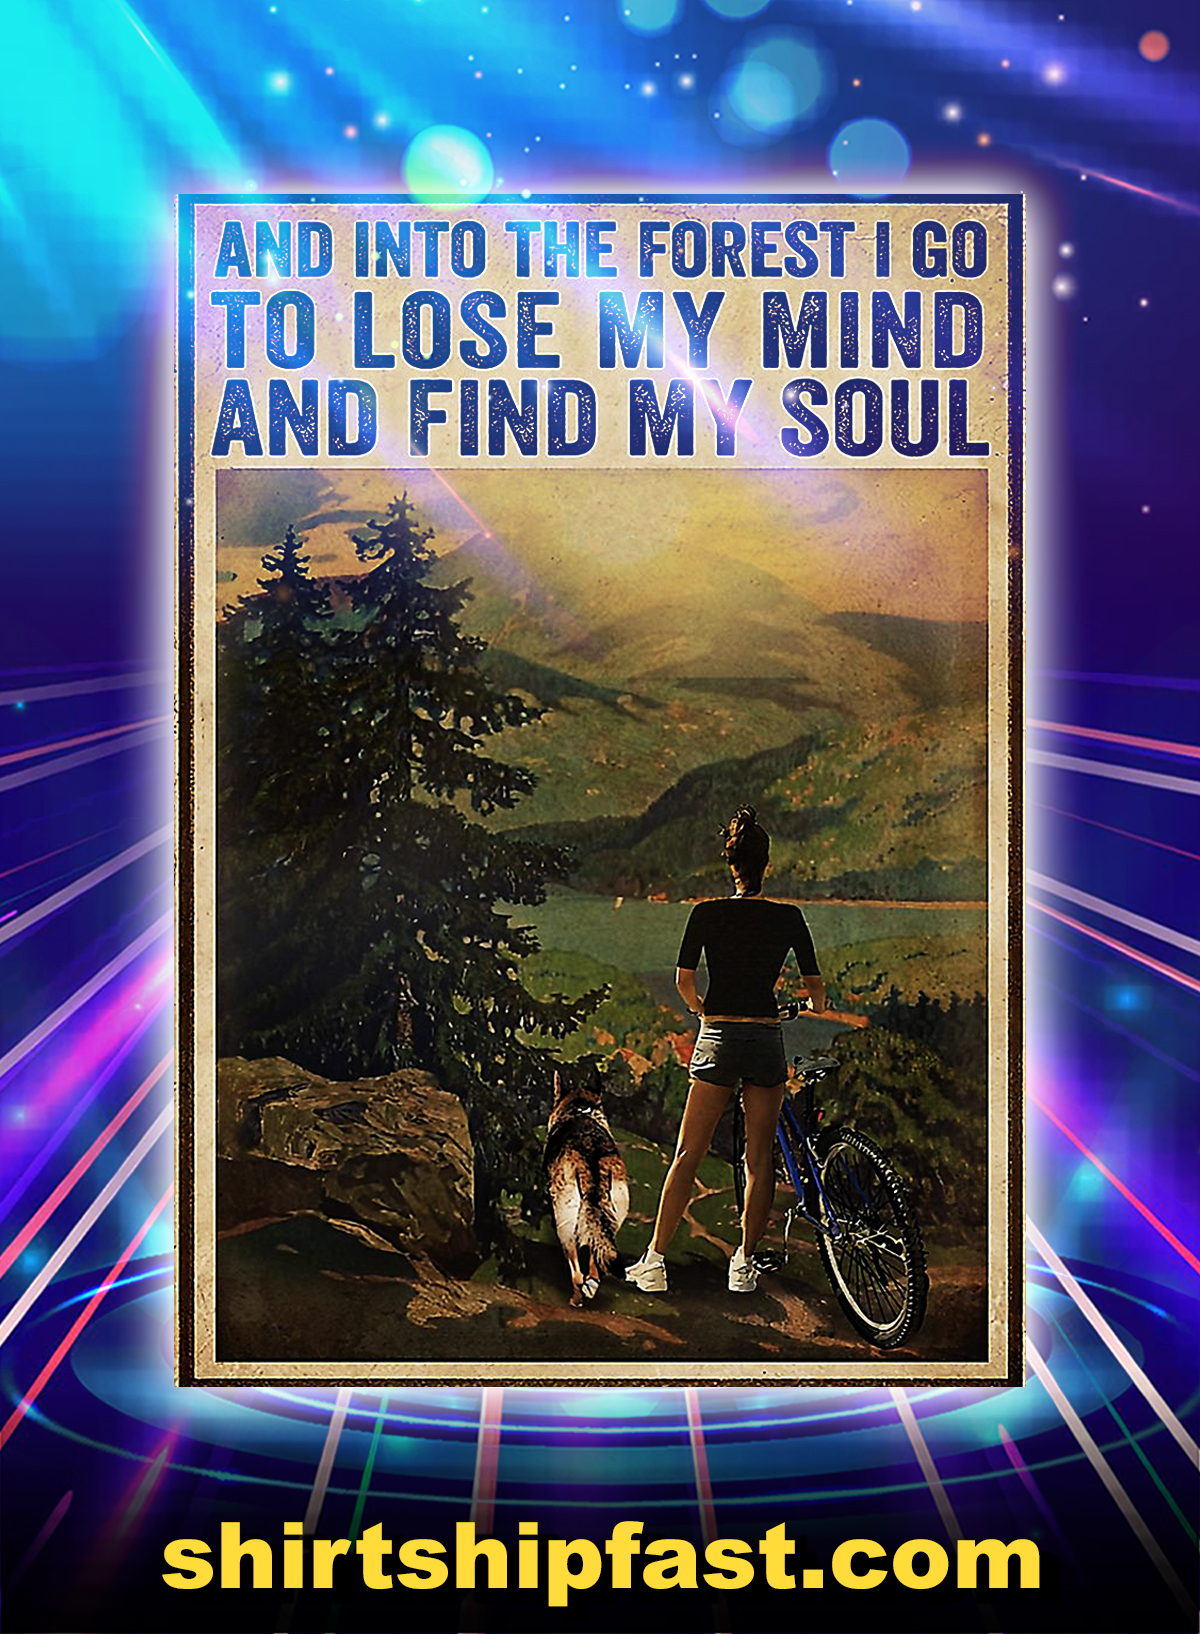 Cyling and into the forest i go to lose my mind and find my soul poster - A4